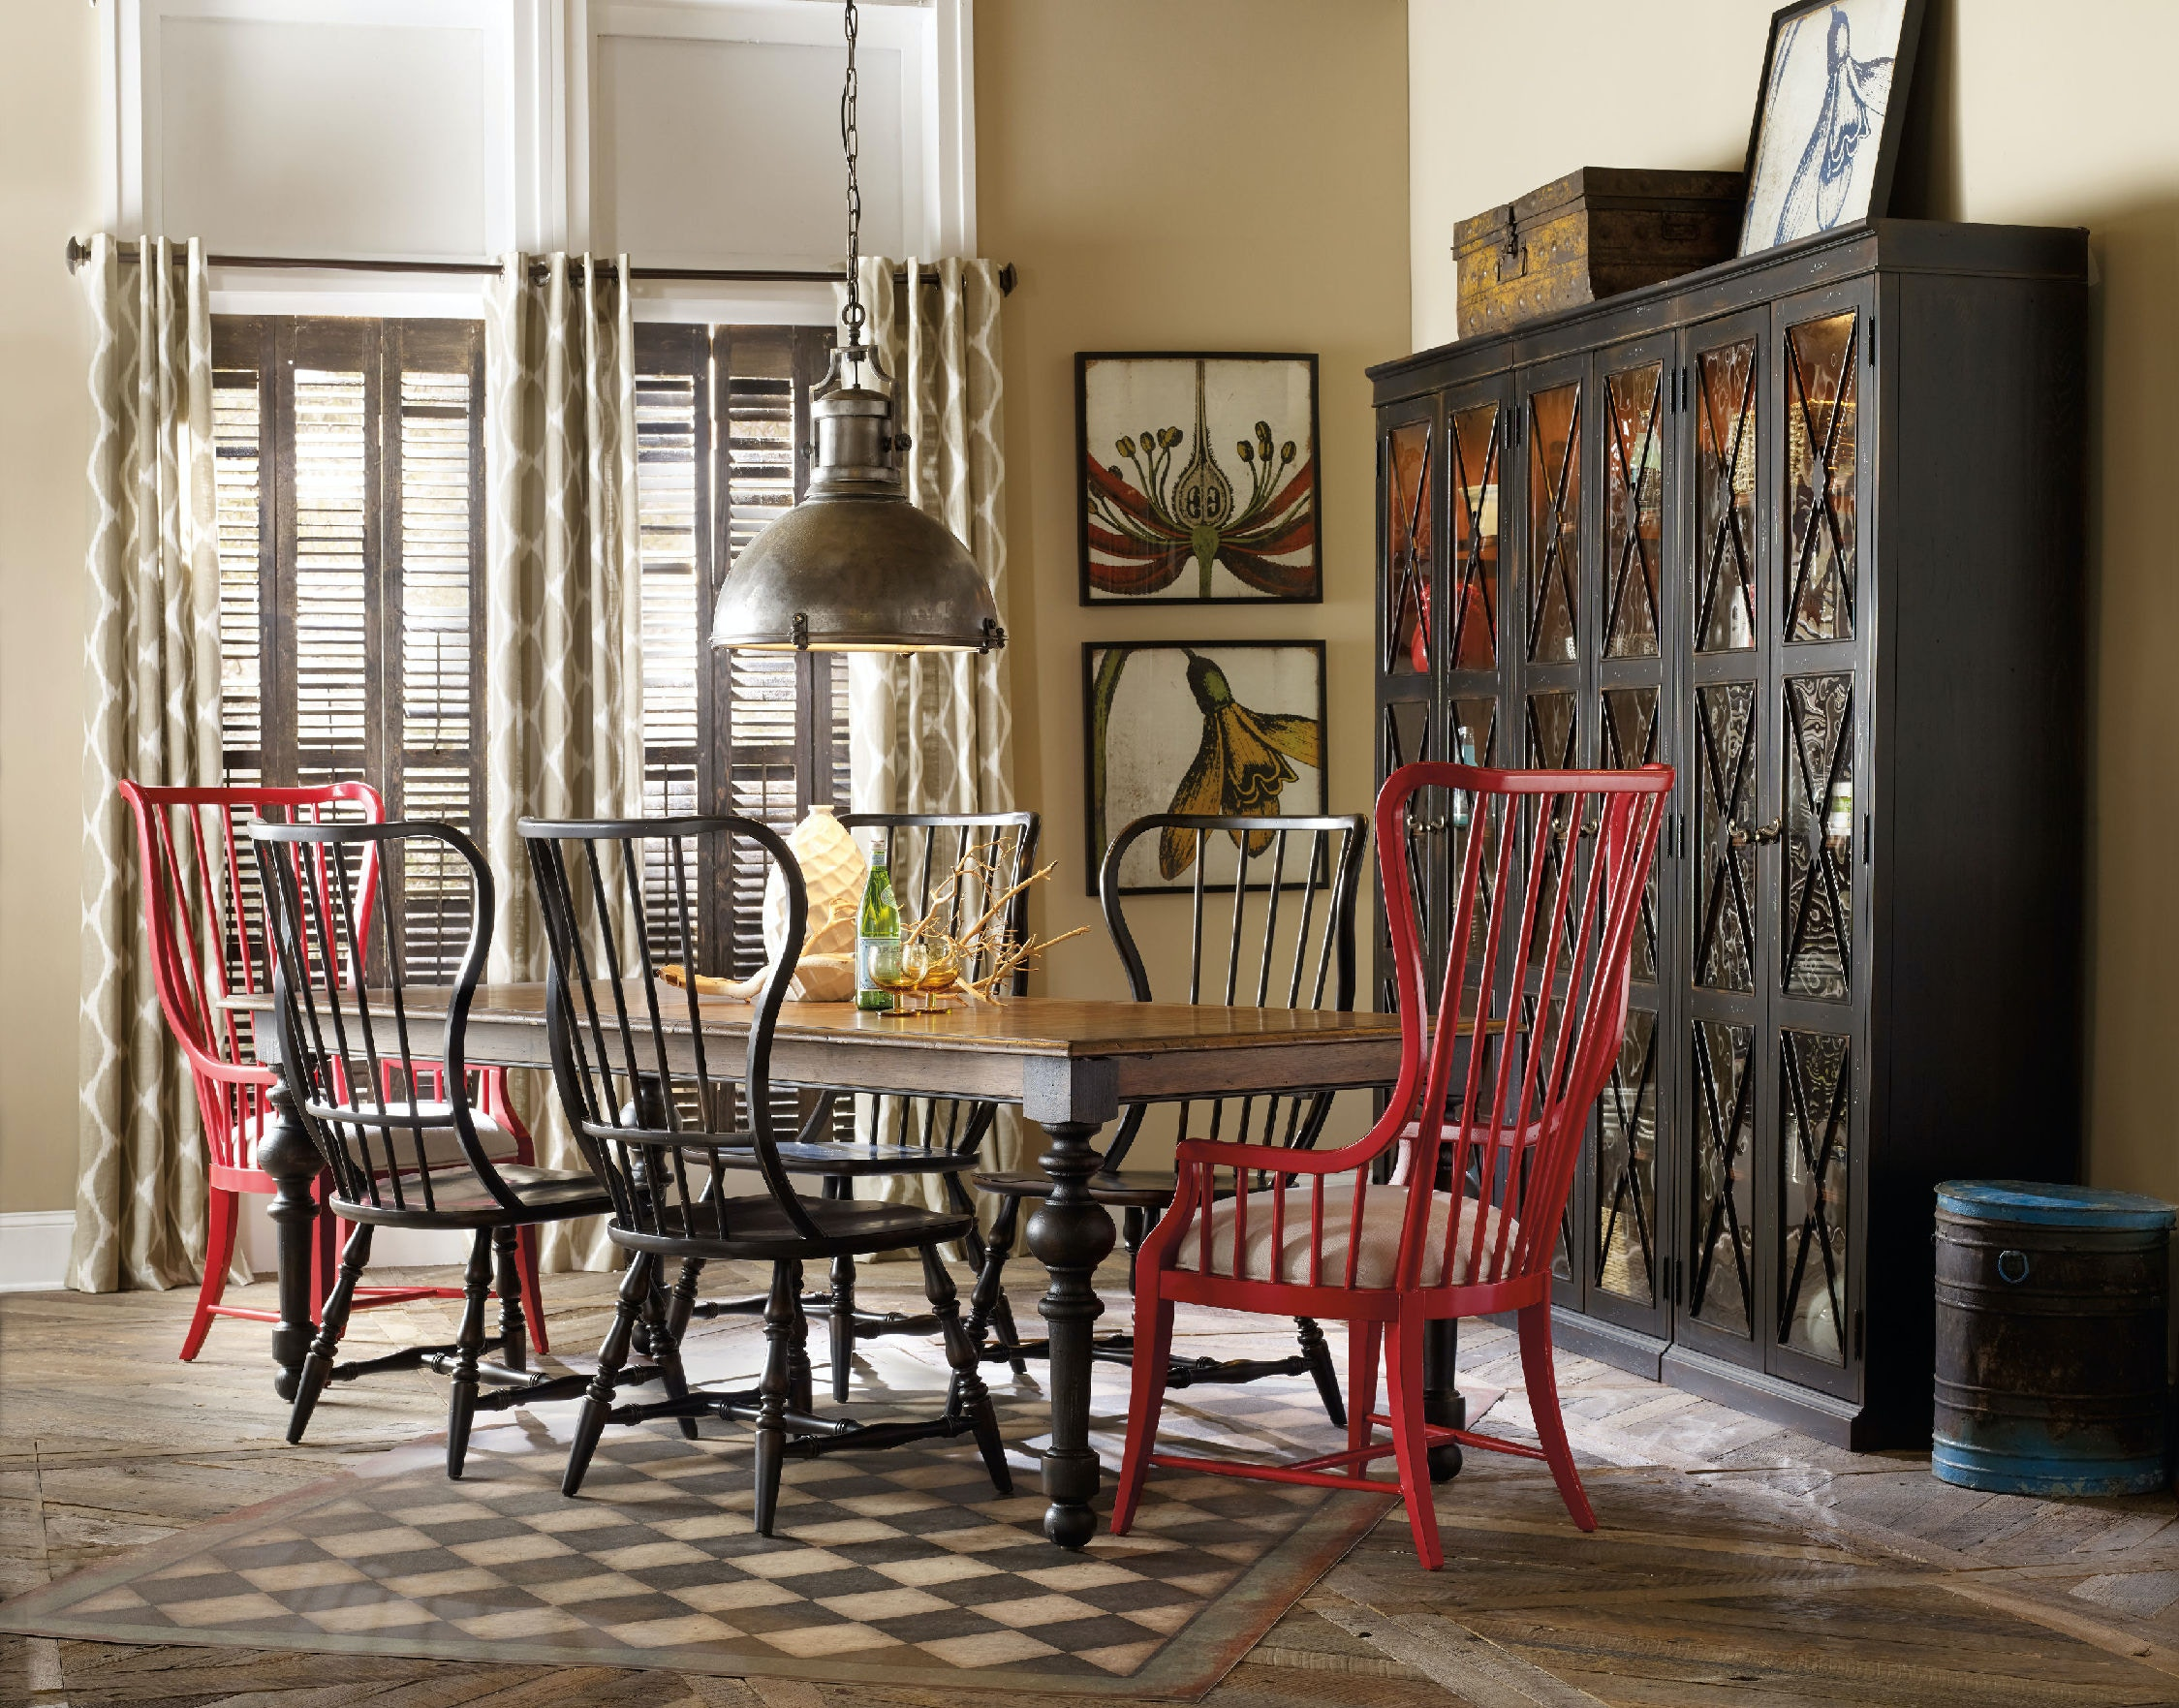 Hooker Furniture Dining Room Sanctuary Tall Spindle Arm Chair 5404